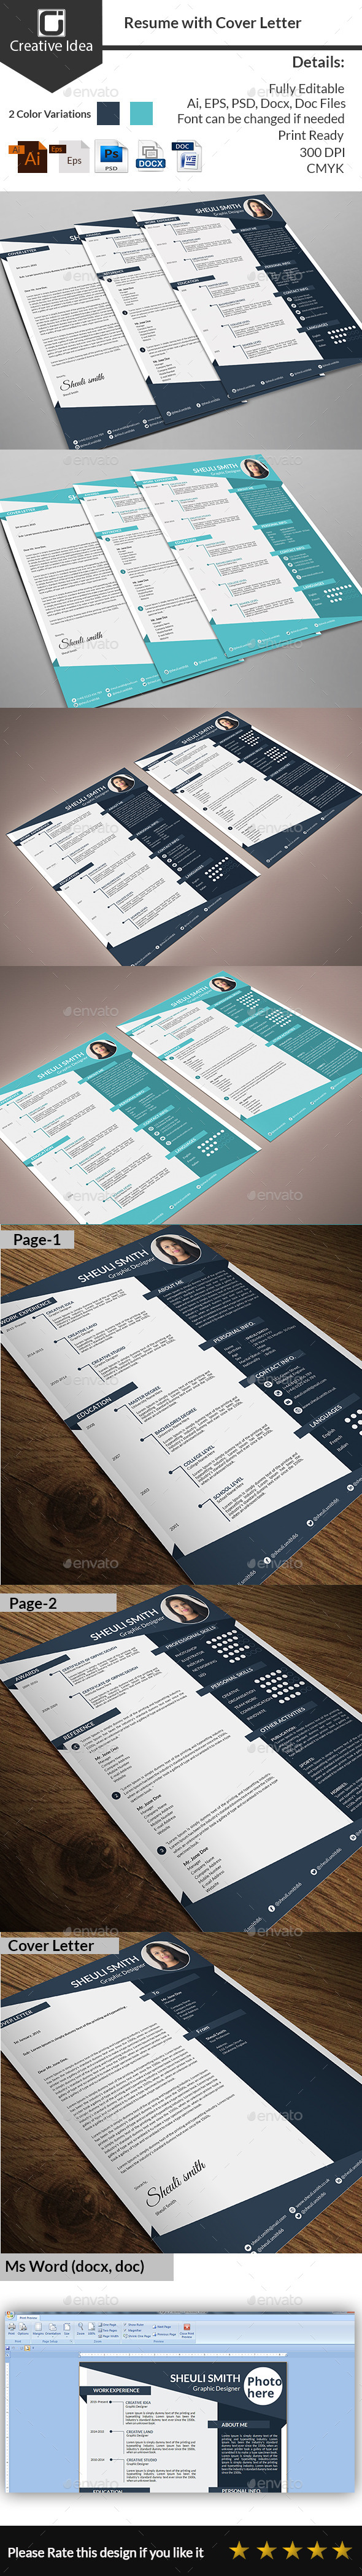 GraphicRiver CV Resume & Cover Letter 11181877